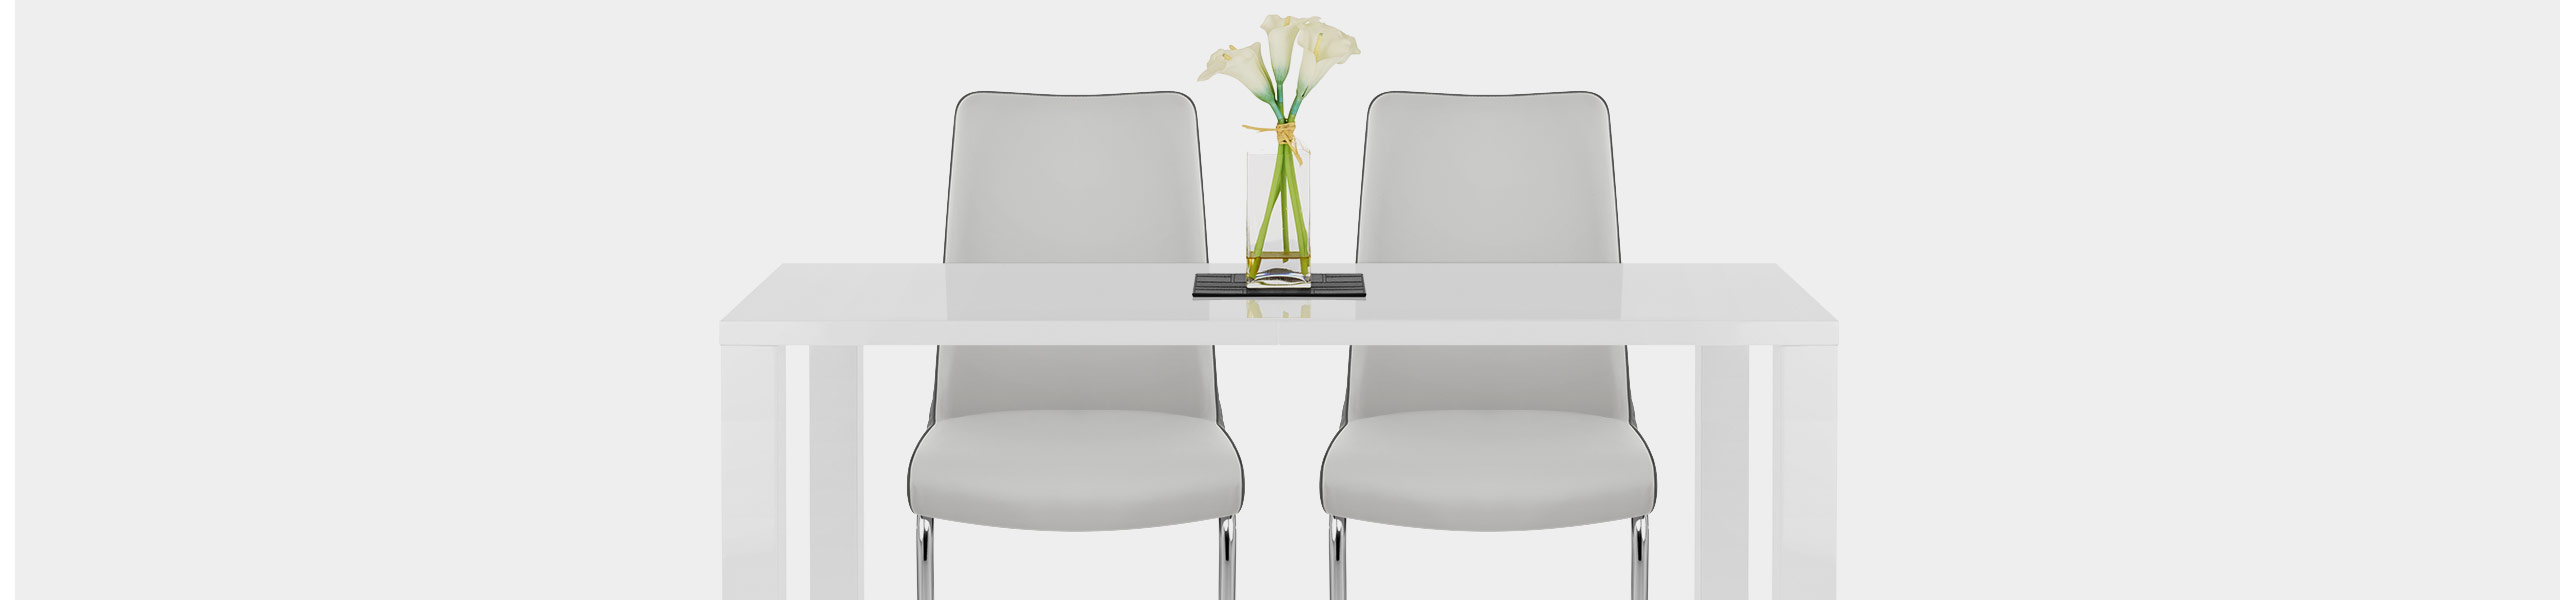 Alder Dining Chair Grey & Charcoal Video Banner